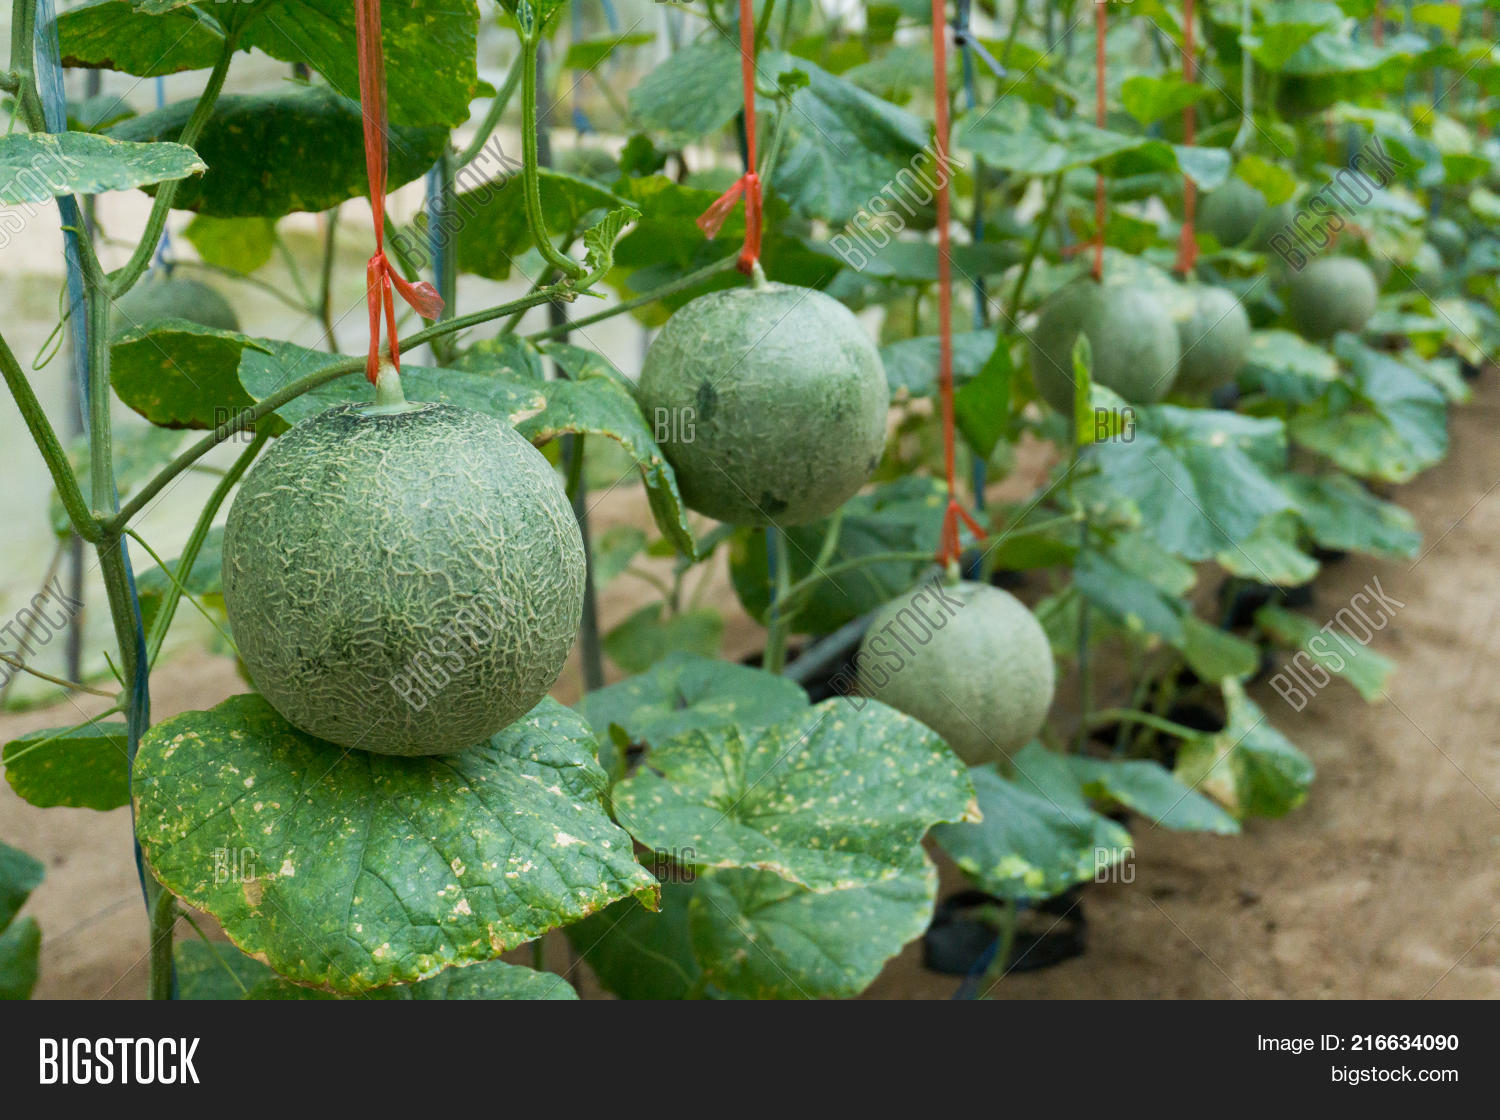 Baby Melon Rock Ball Image Photo Free Trial Bigstock Choose melon which smells sweet and. baby melon rock ball image photo